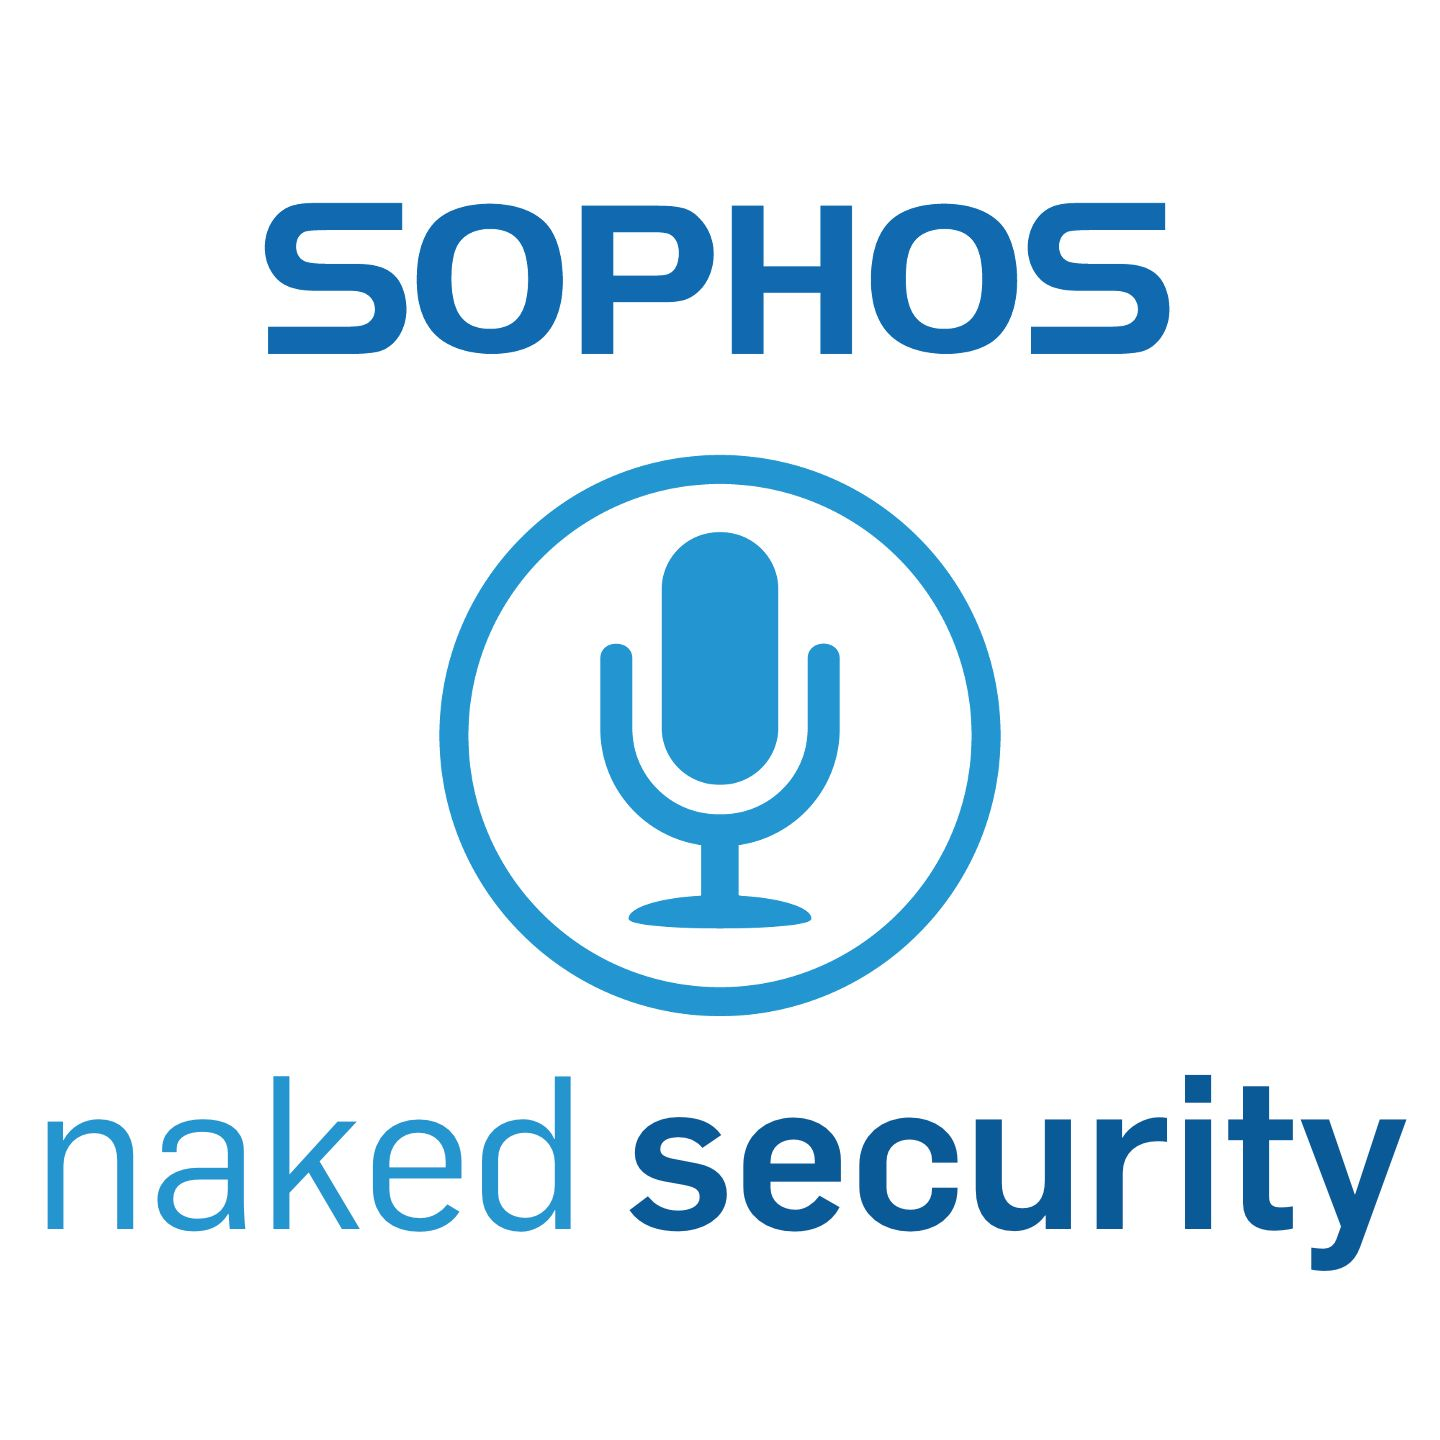 Ep. 020 - Leaky containers, careless coders and risky USB cables